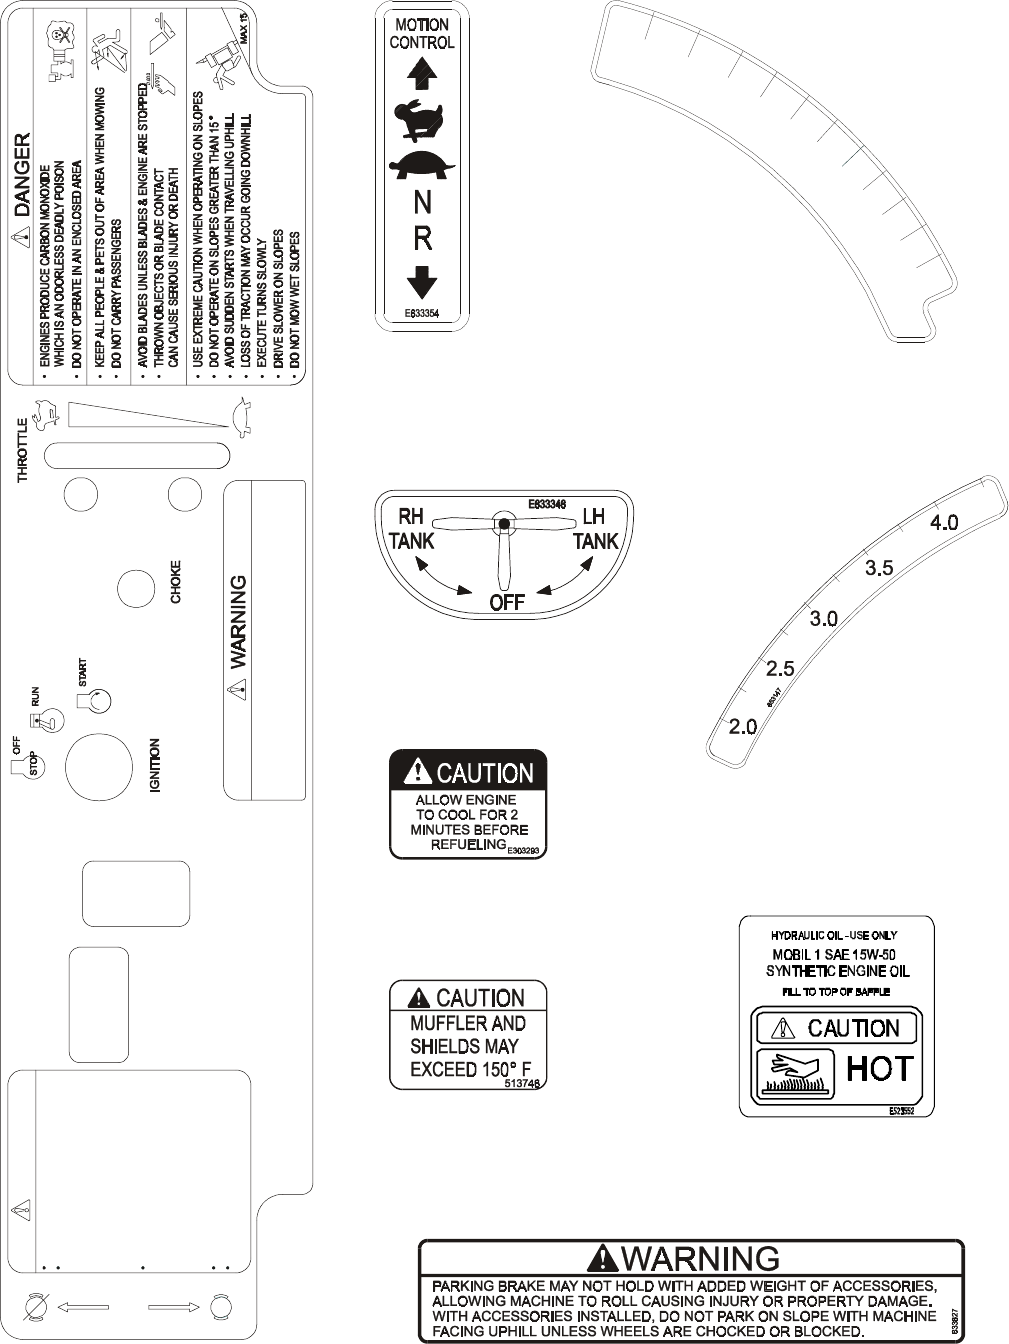 Exmark Lazer Ztm Users Manual 1..SAFETY on